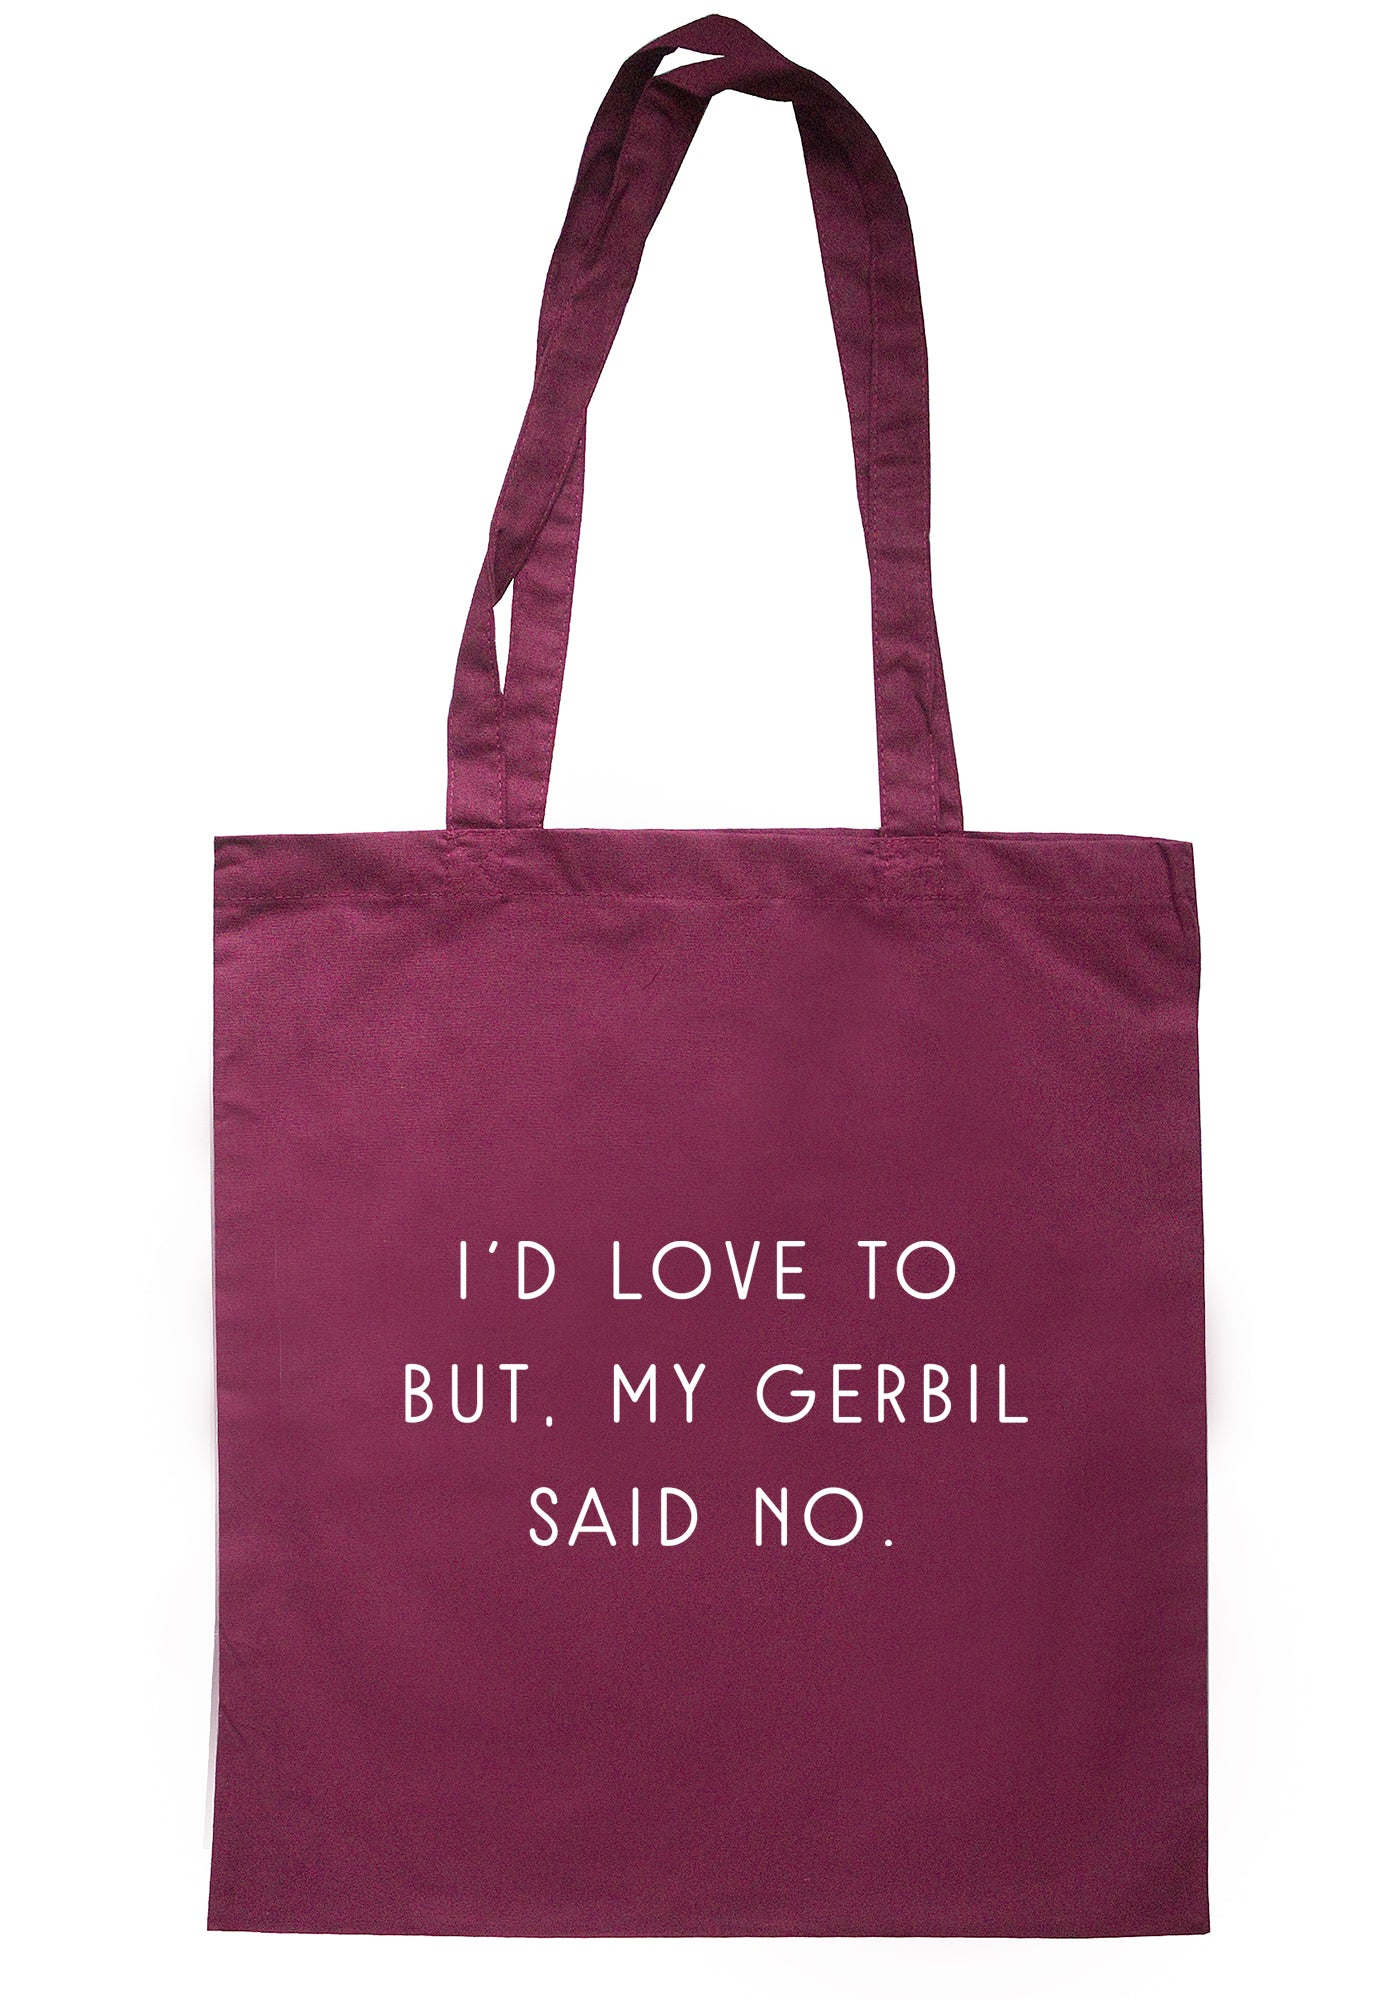 I'd Love To But, My Gerbil Said No Tote Bag S1063 - Illustrated Identity Ltd.